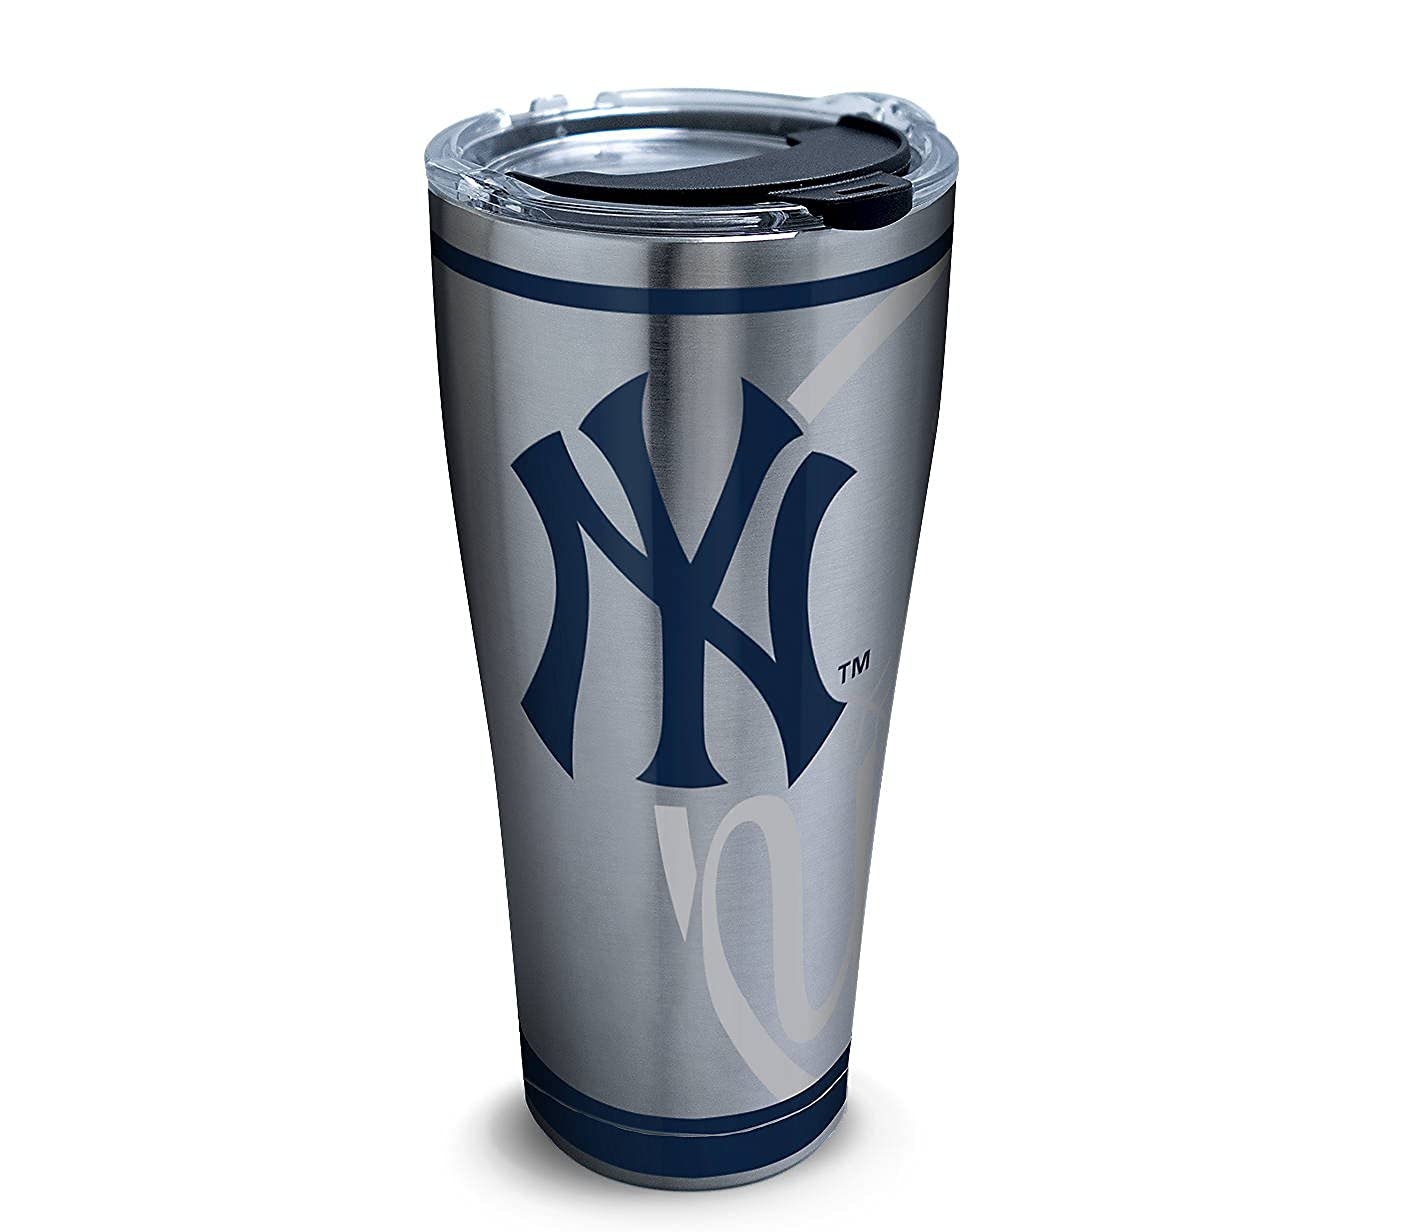 Amazon.com: New York Yankees acero inoxidable 30oz vaso con ...